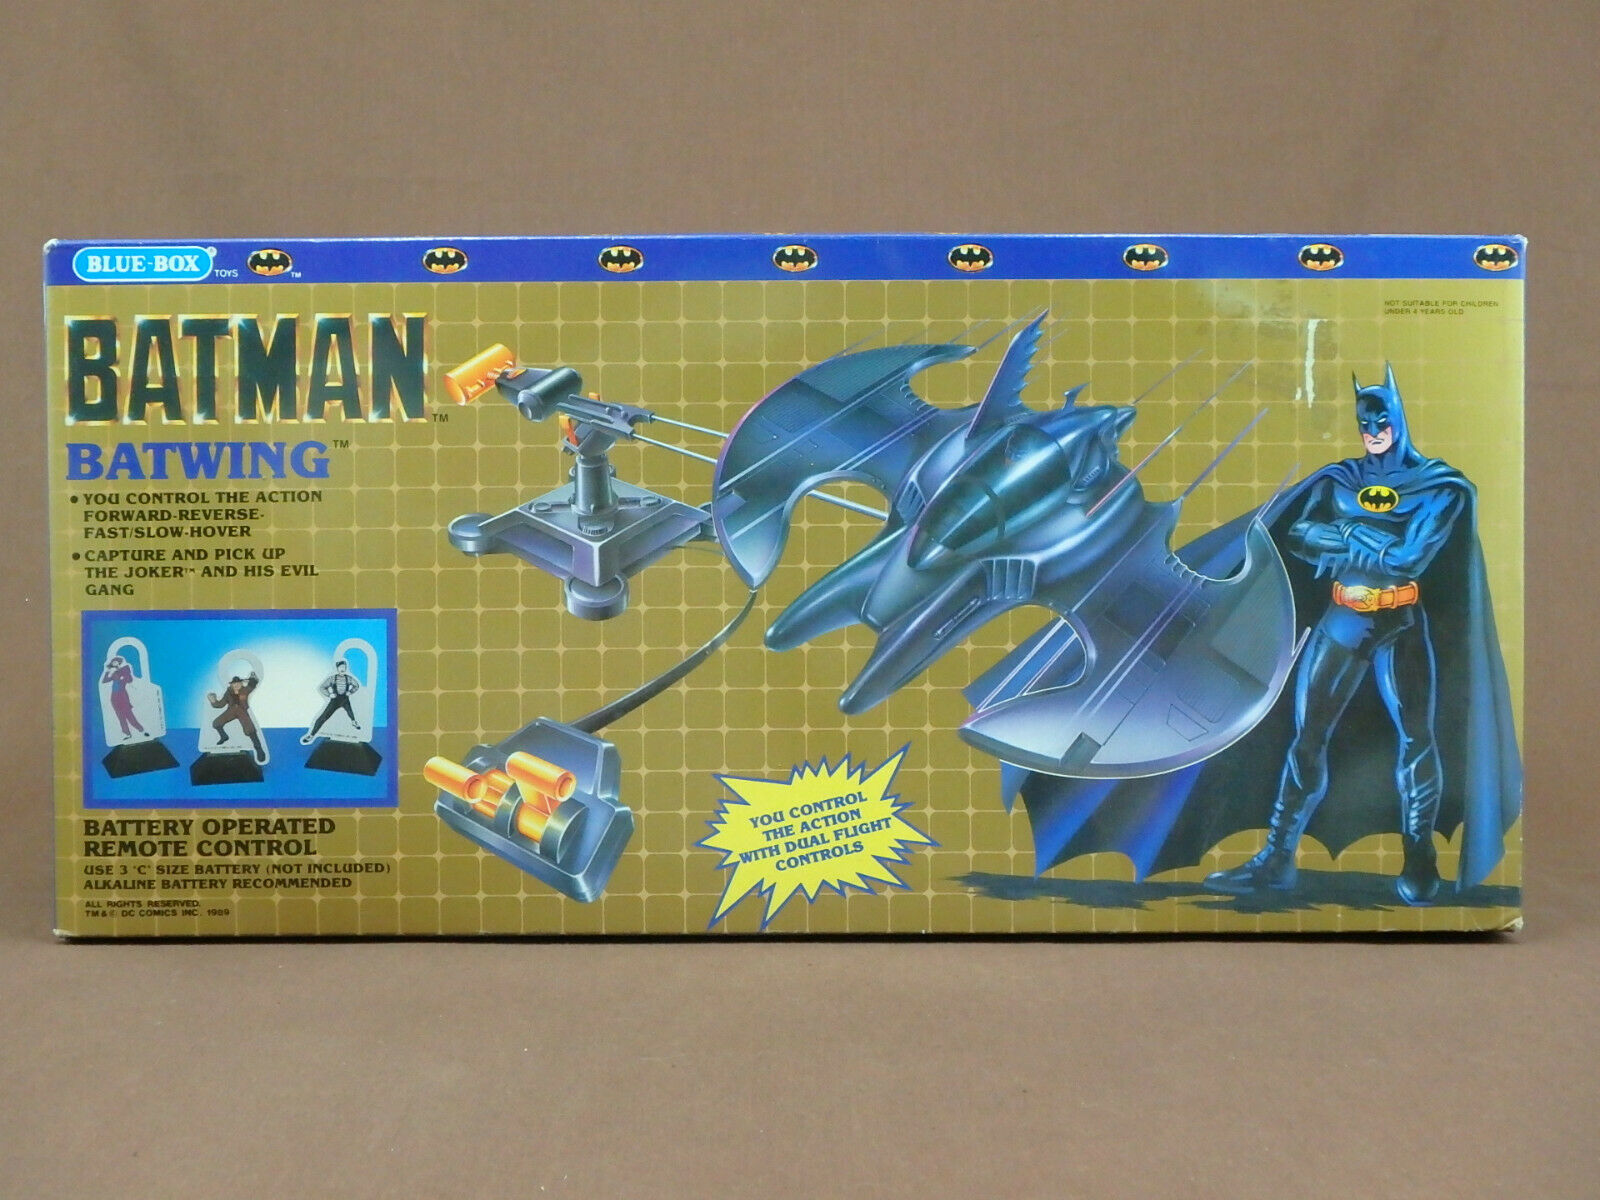 BATMAN 1989 MOVIE BATWING blueE BOX greenIBIRD TYPE PLAYSET VERY HARD TO FIND